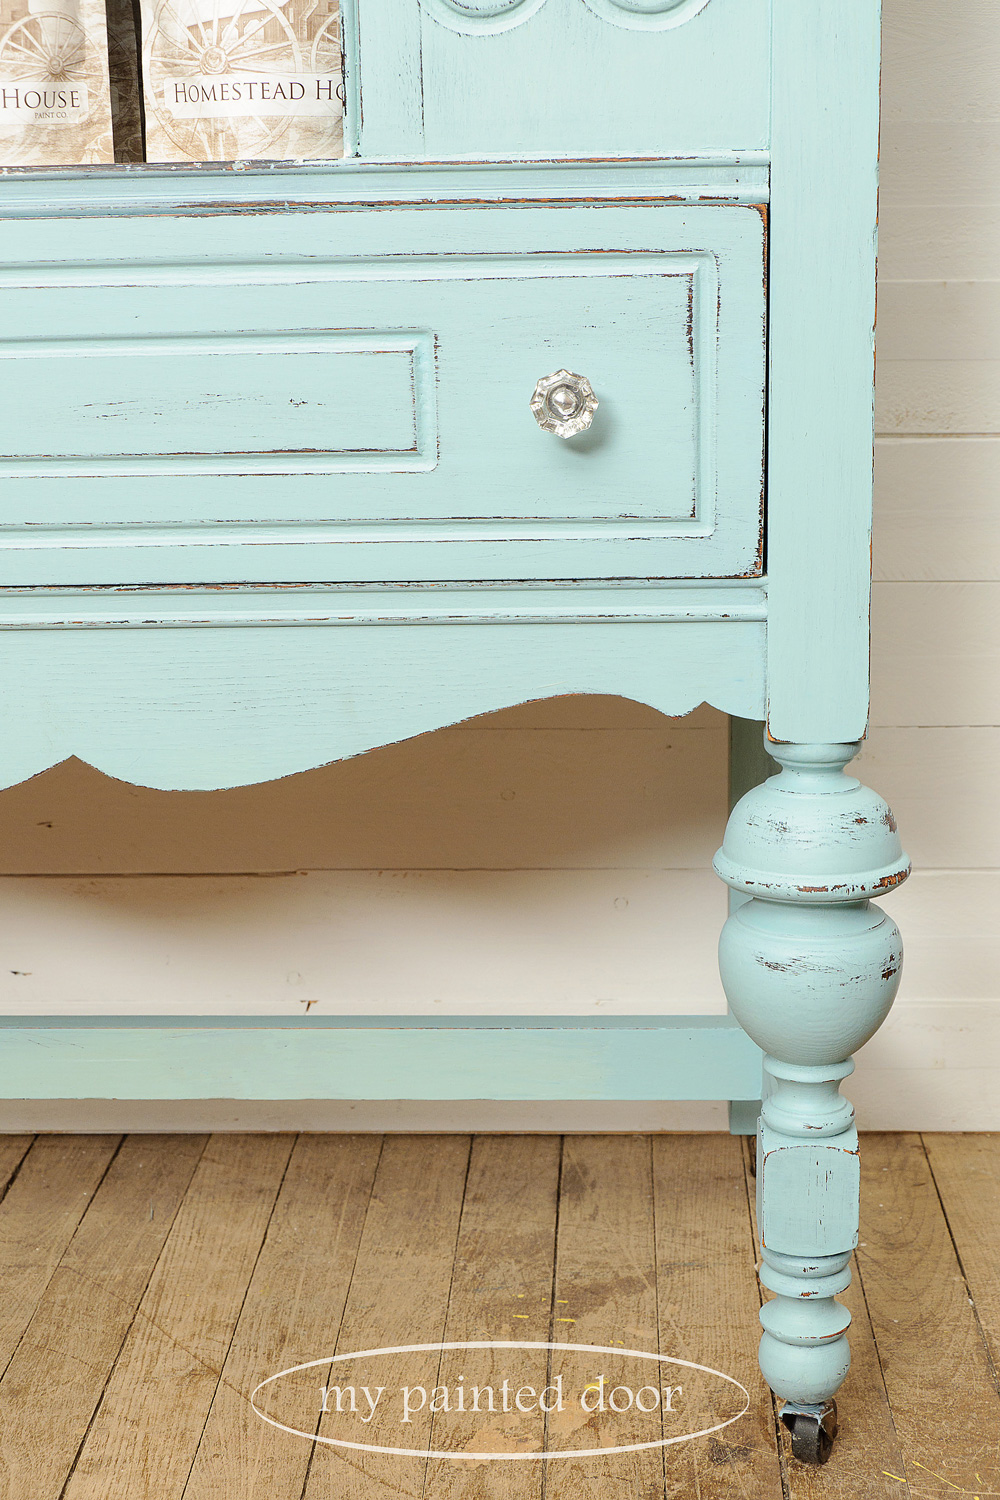 Hutch painted in Homestead House Milk Paint in Loyalist and Champlain.